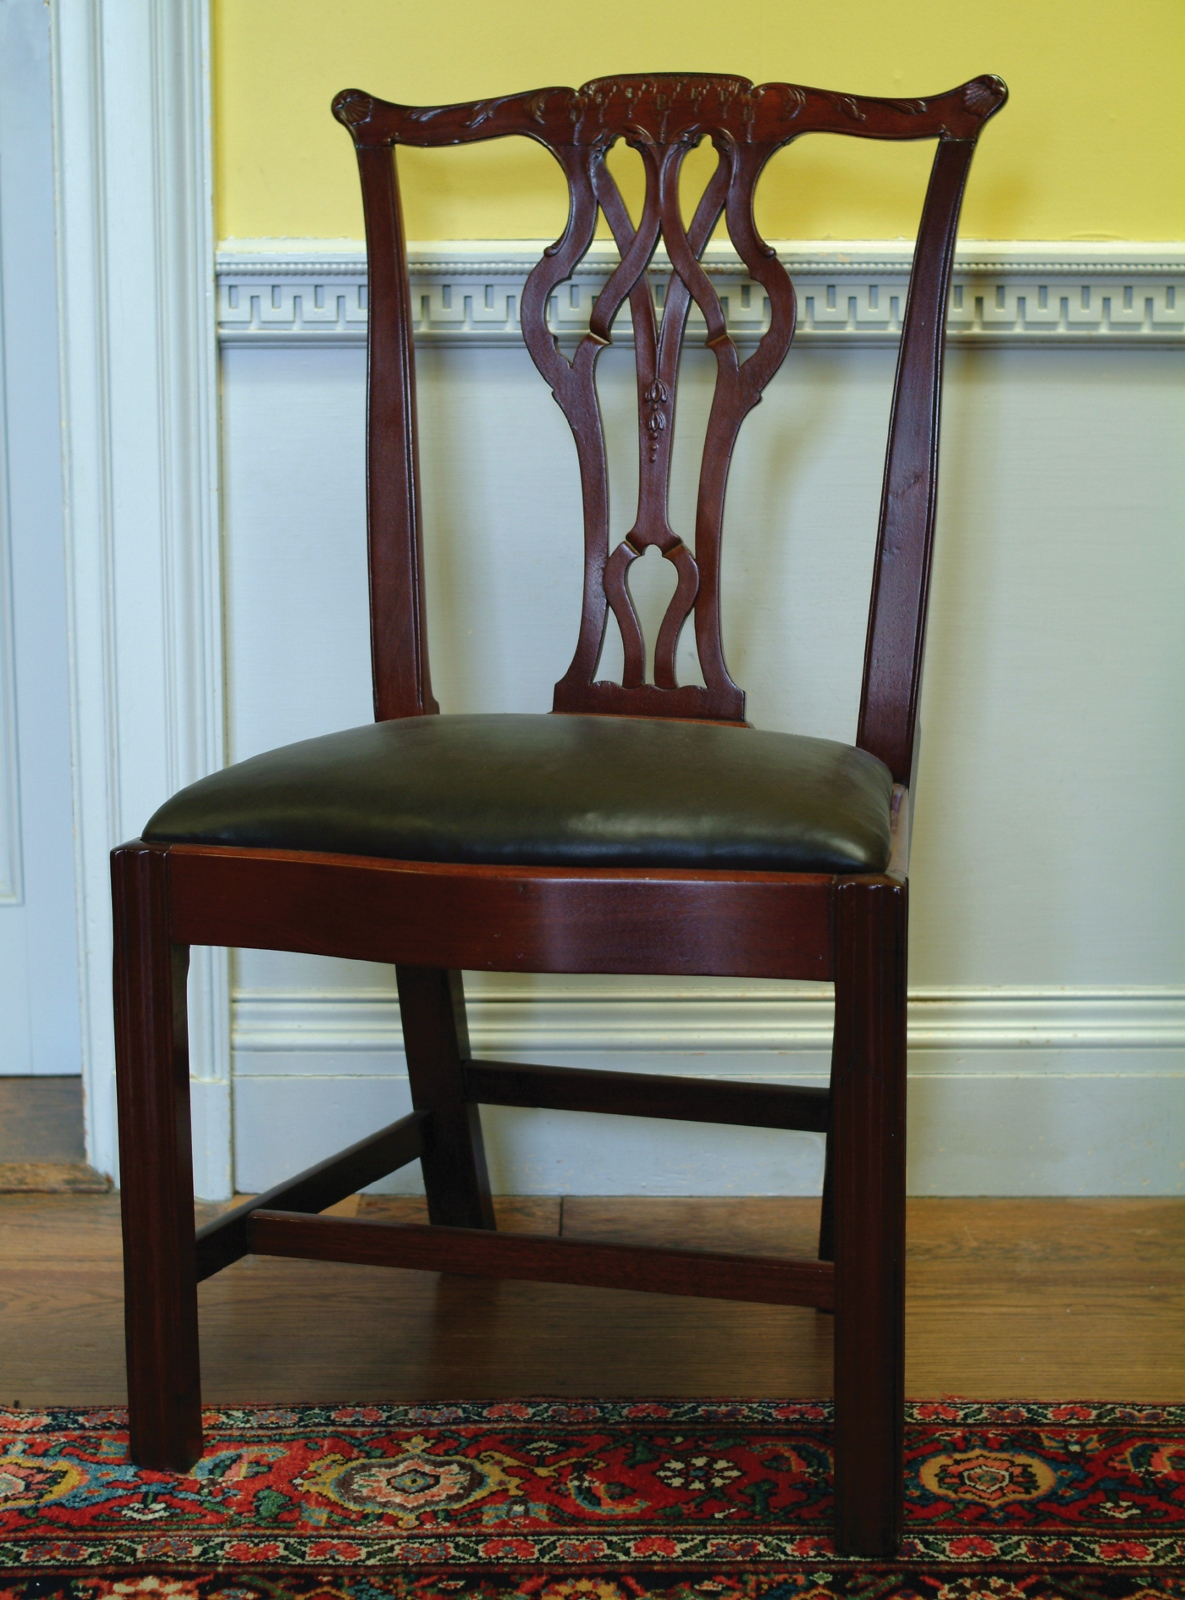 chippendale dining chair modern orange chairs style ca 1780 knox museum